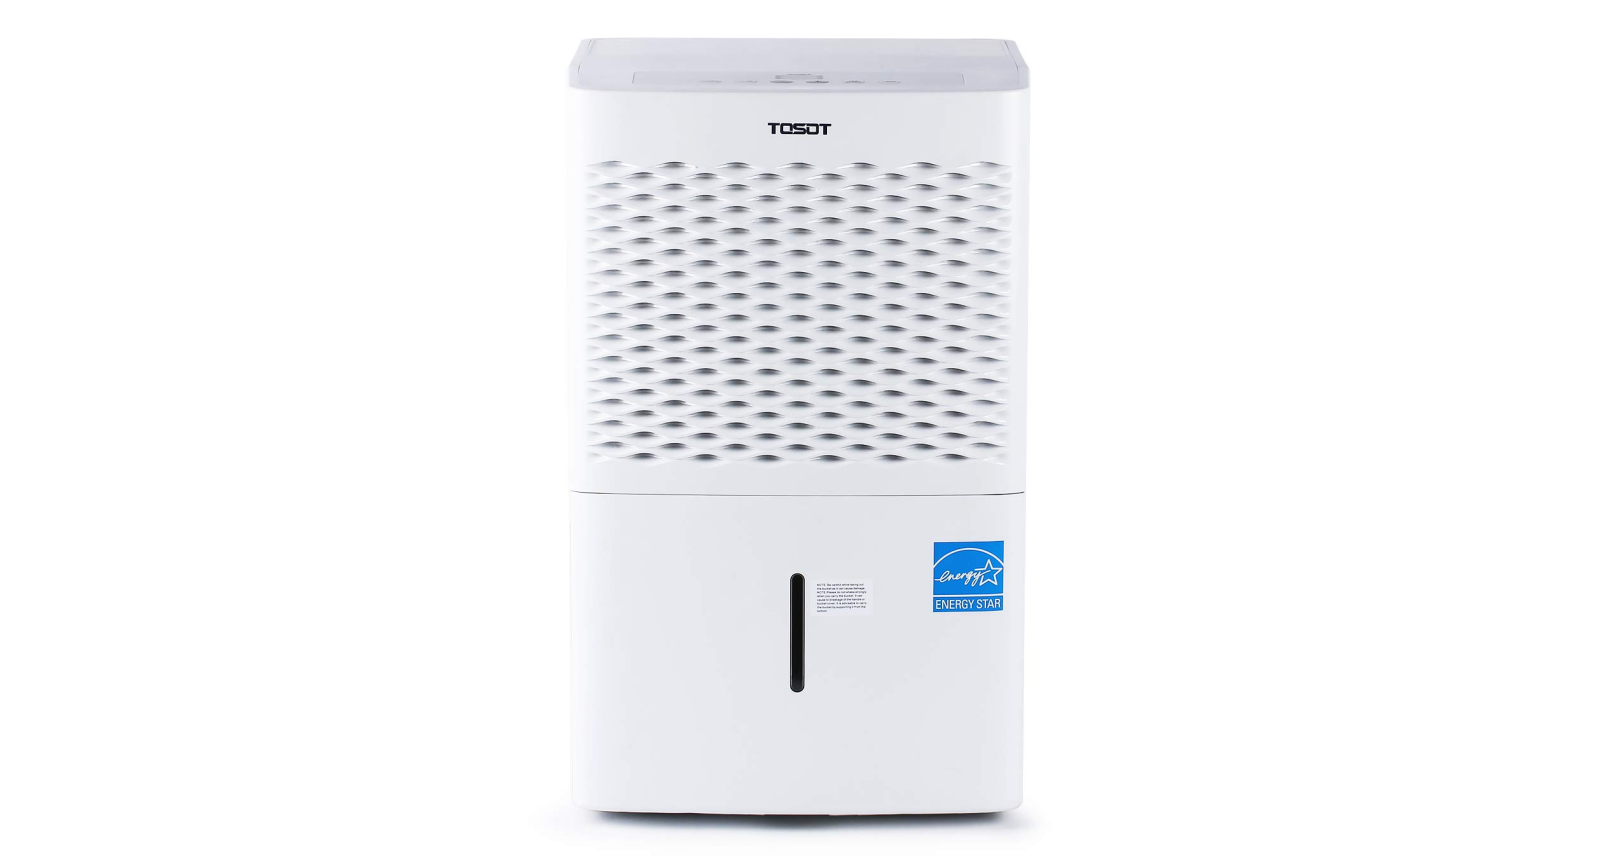 Say Goodbye To Mold With The Tosot 30-Pint Dehumidifier